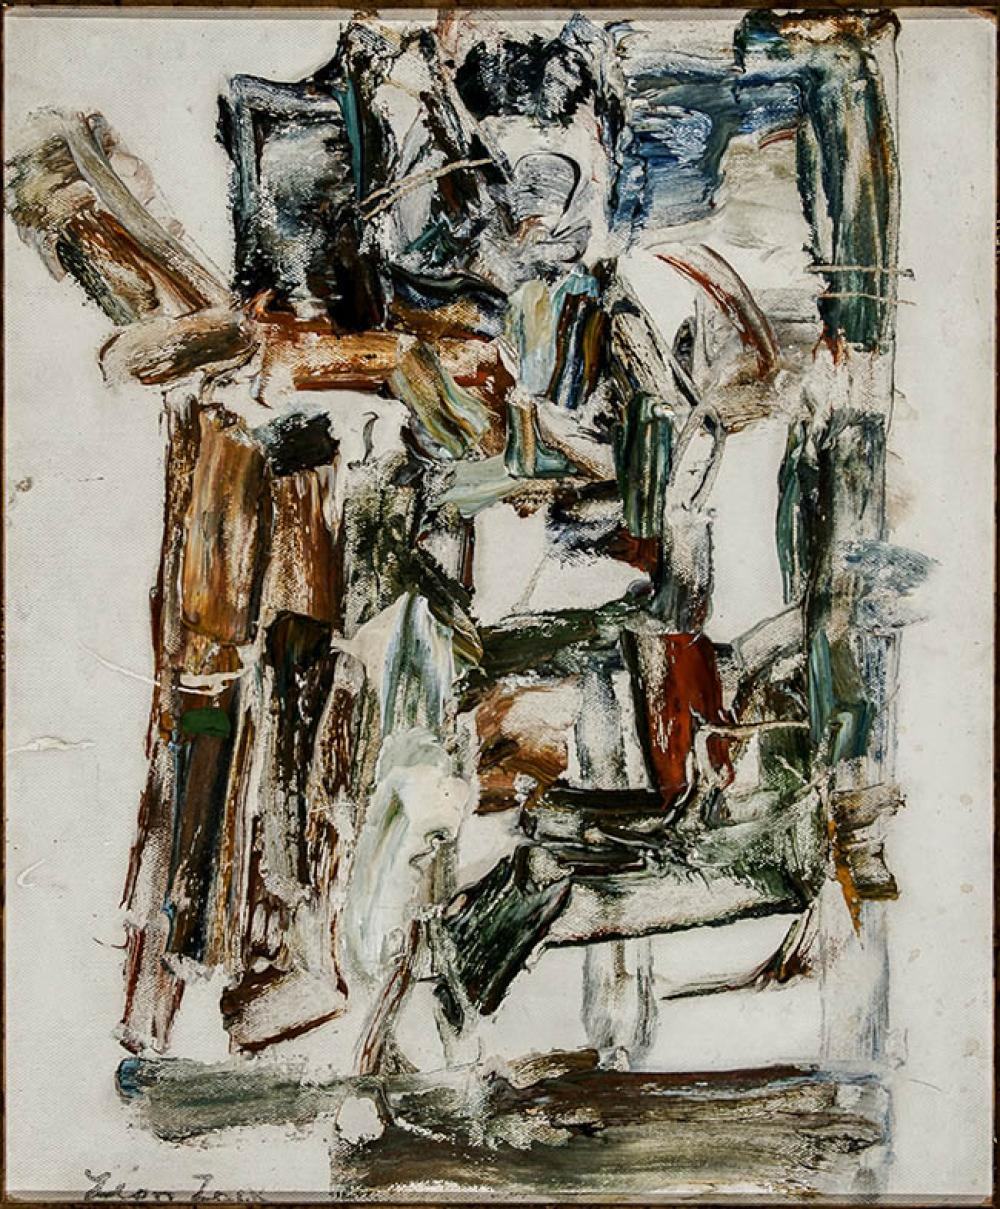 Léon Zach (Russian/American 1892-1980), Untitled Abstract, Oil on Masonite, 24 x 19-1/2 in